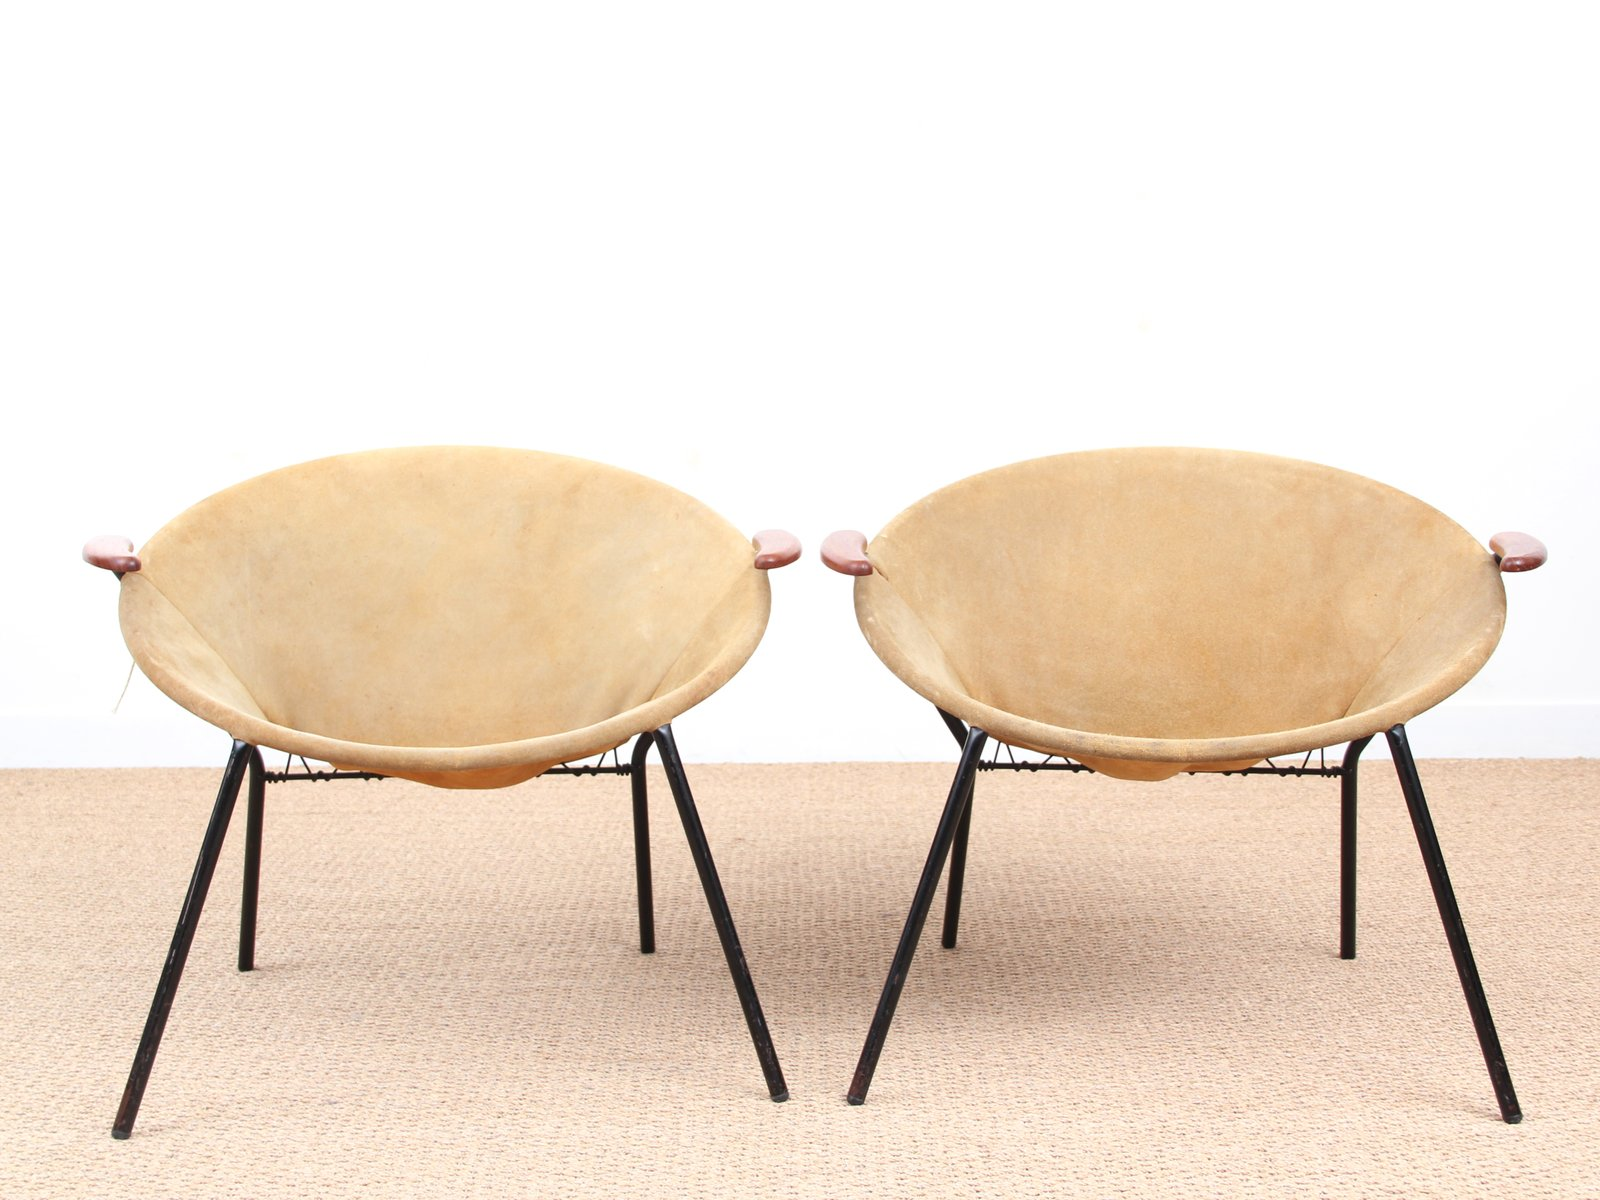 scandinavian balloon chairs by hans olsen 1950s set of 2 for